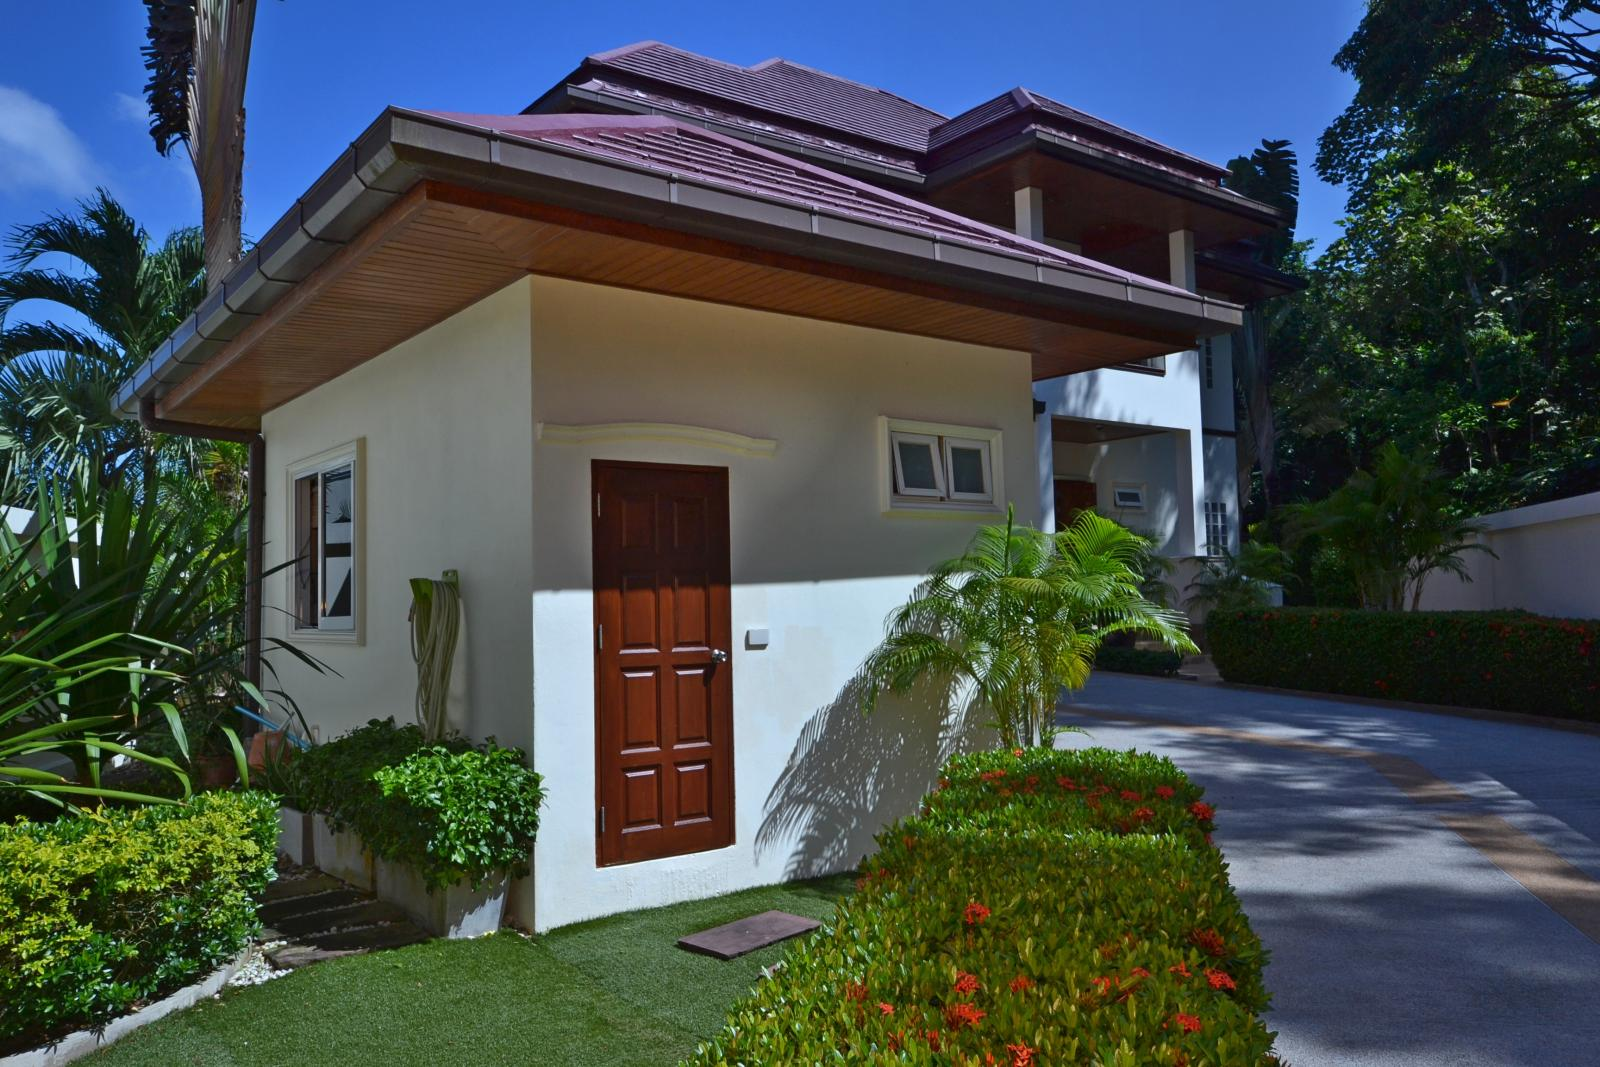 phuket 4 bedroom house for rent in kathu thailand